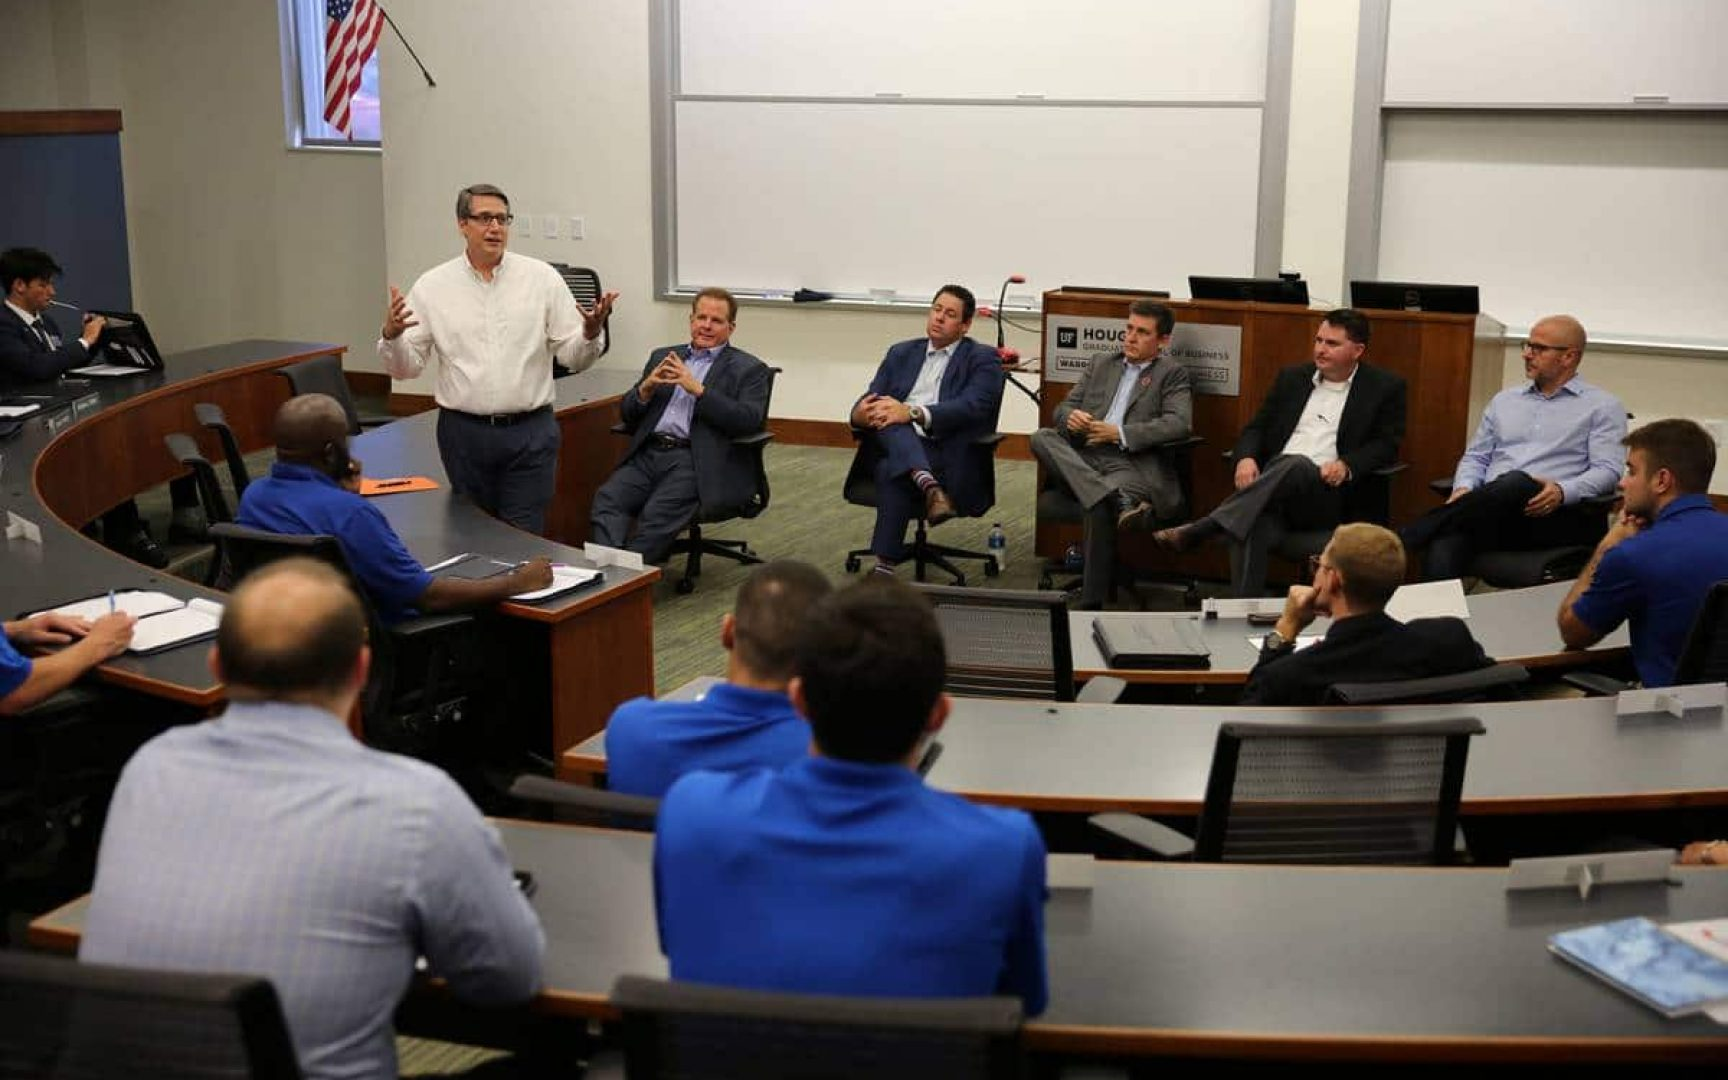 Students in audience listening to 6 seated members of the UF Real Estate Advisory Board